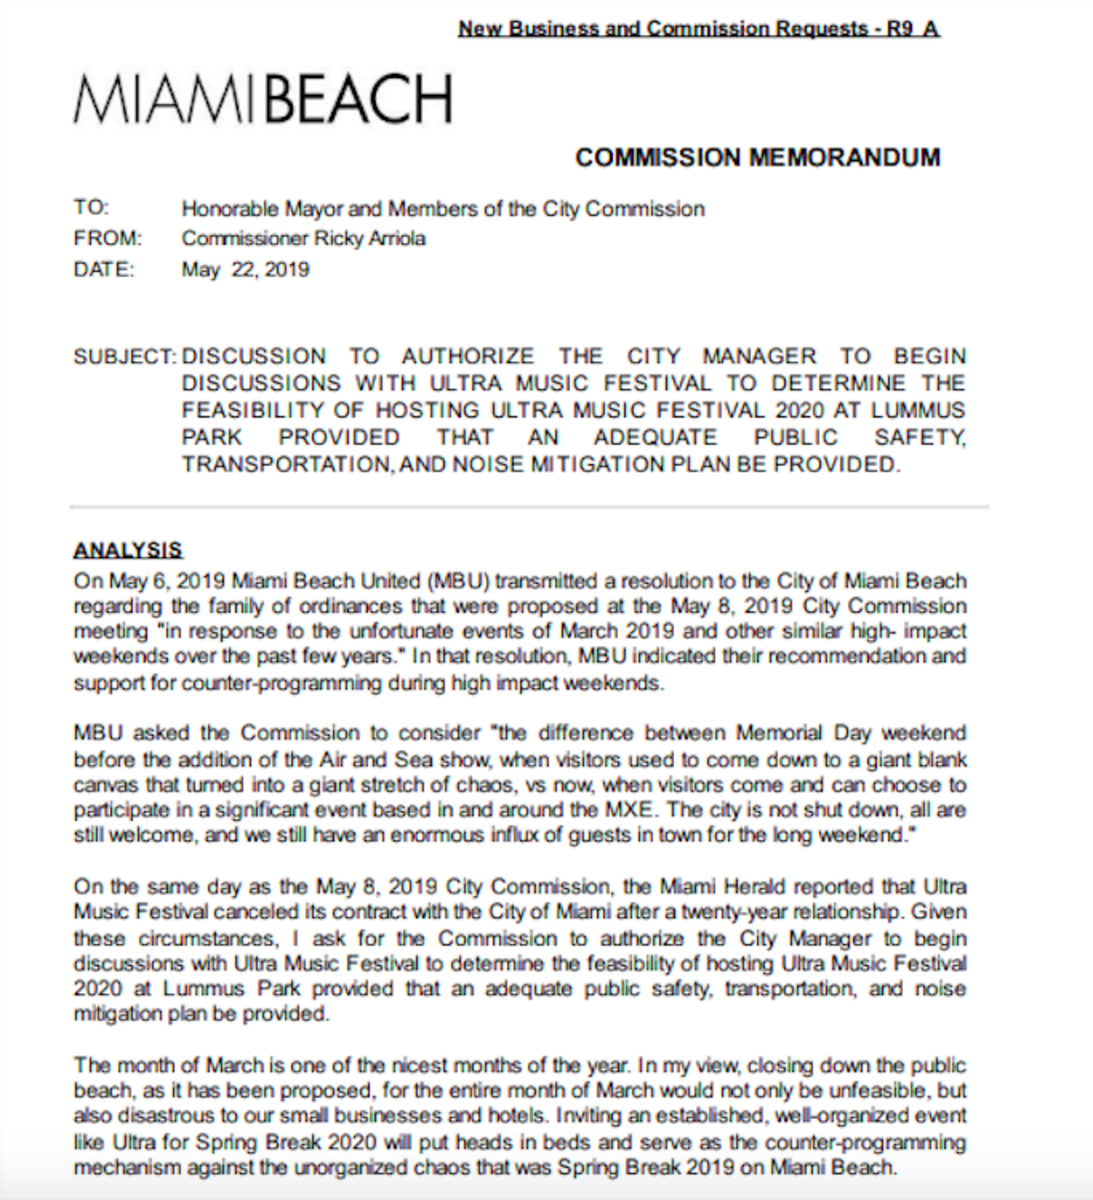 A Miami Beach Commission Agenda Item regarding Ultra Music Festival's potential move to Lummus Park.